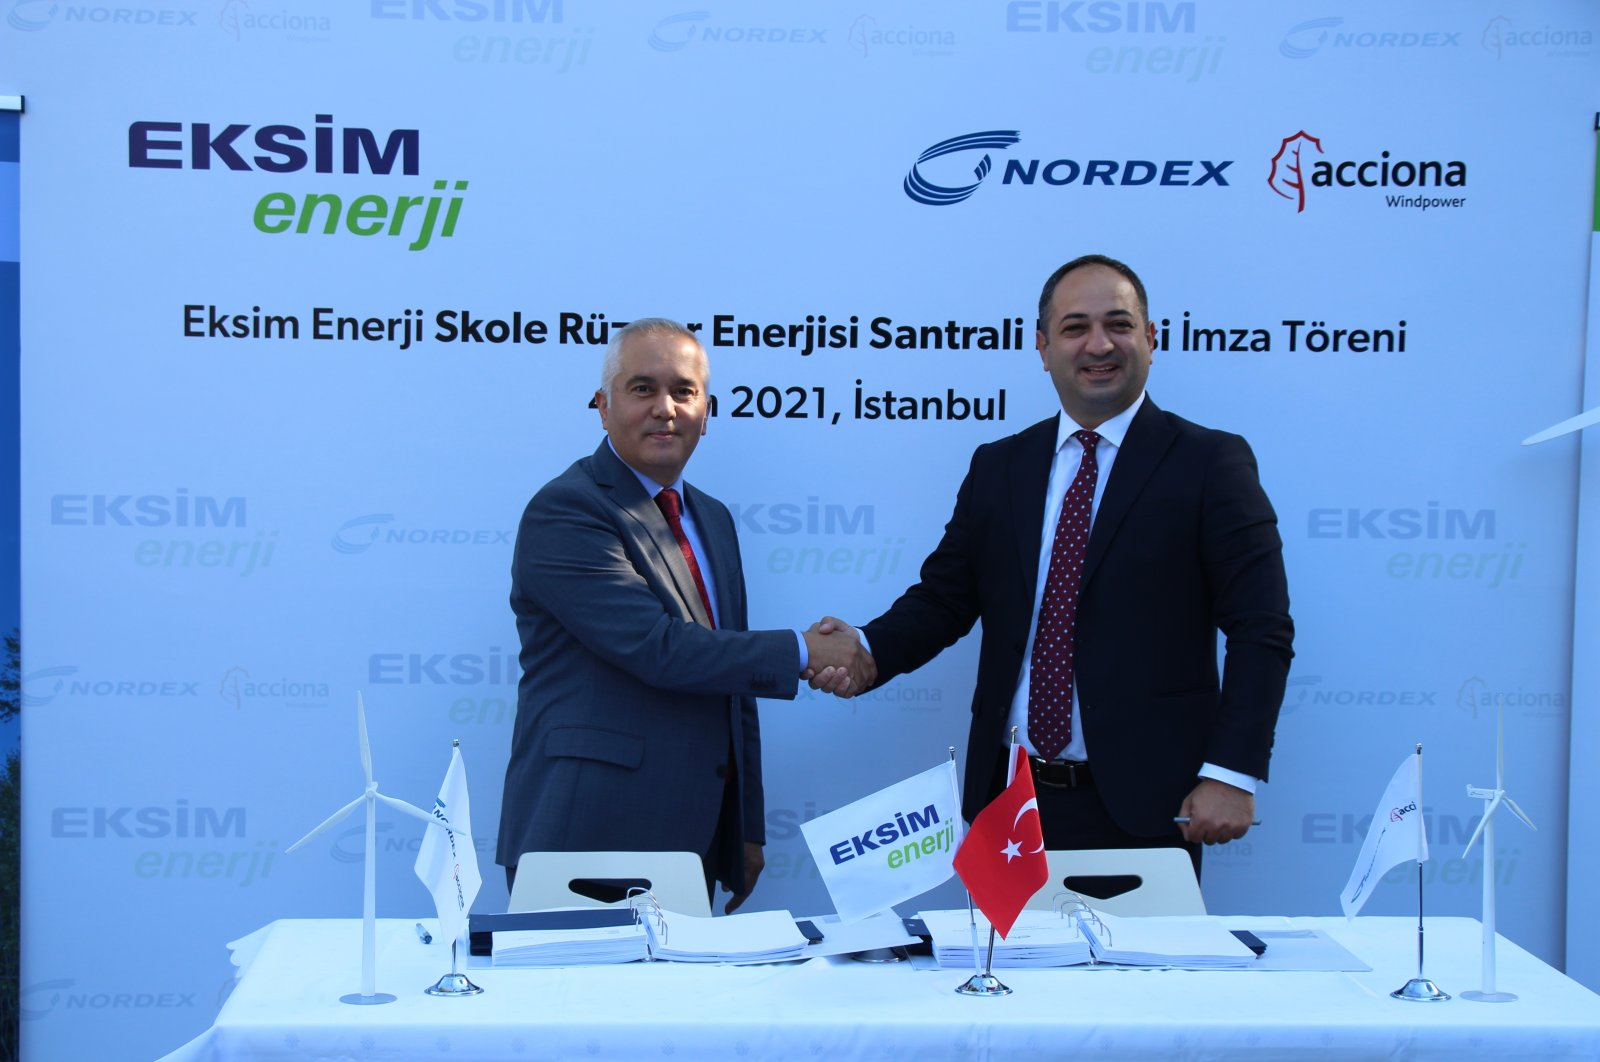 Officials from Eksim and Nordex shake hands during the agreement ceremony, Oct. 5, 2021. (İHA Photo)